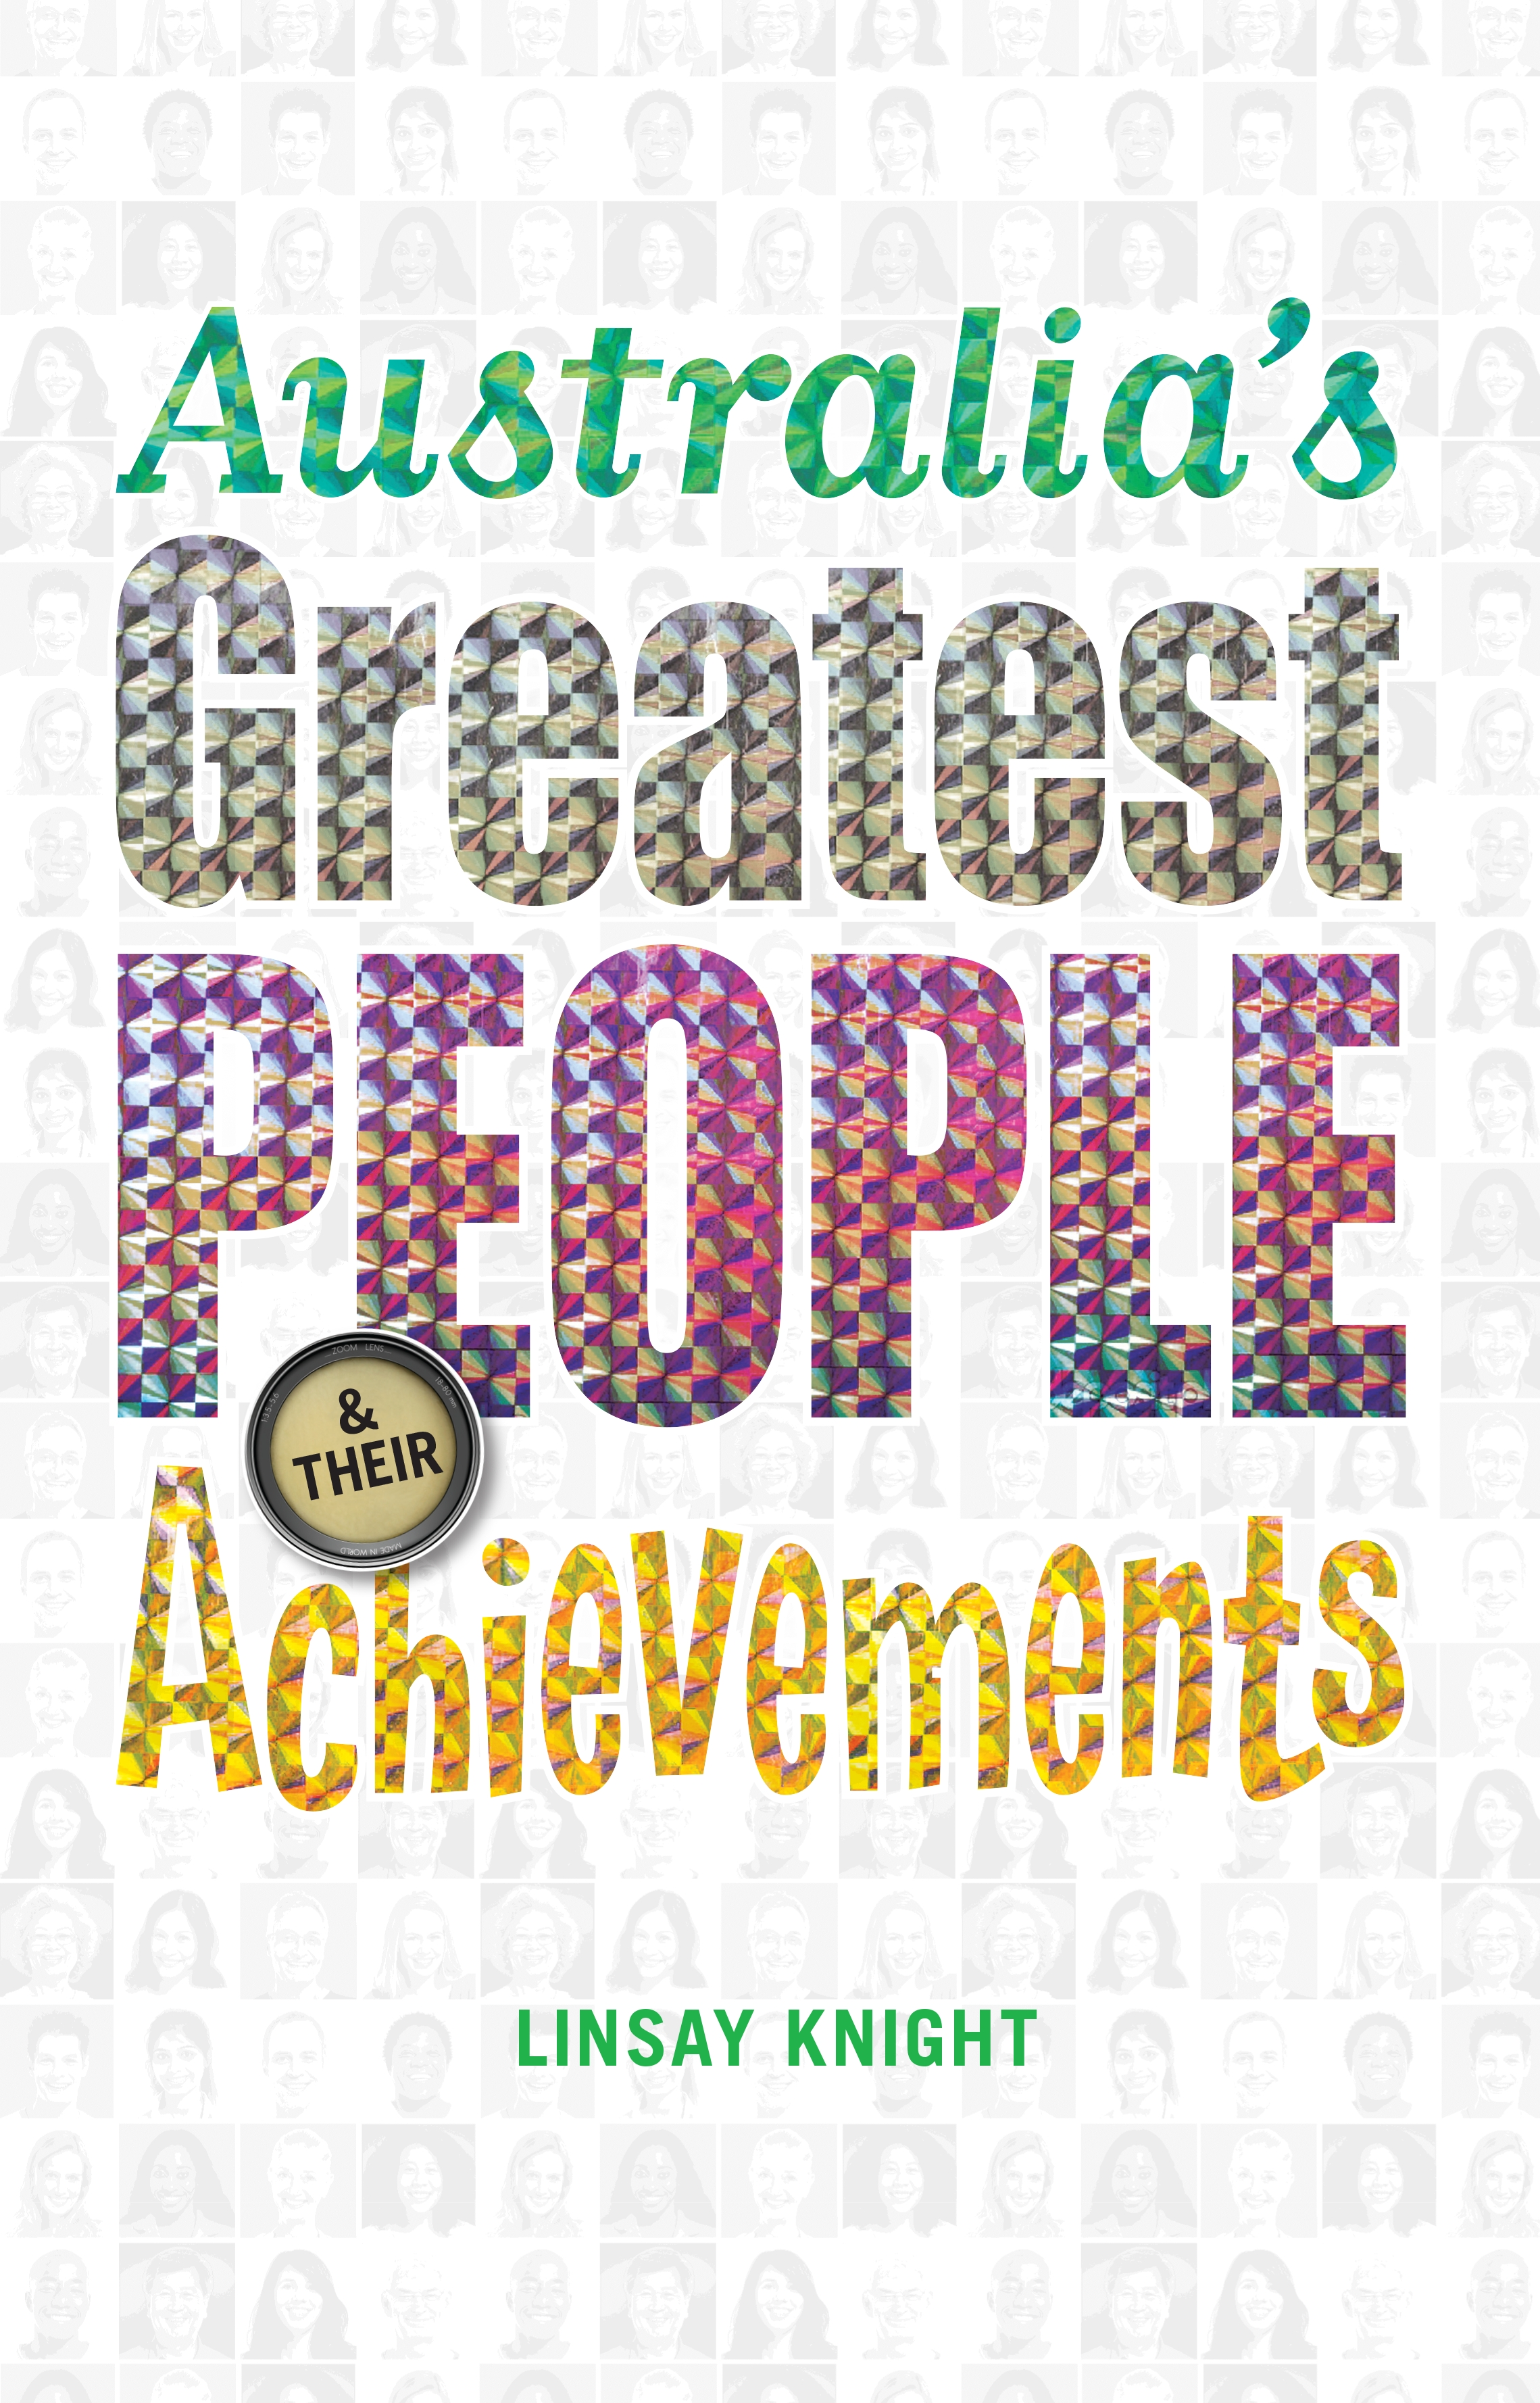 s greatest people and their achievements penguin books s greatest people and their achievements